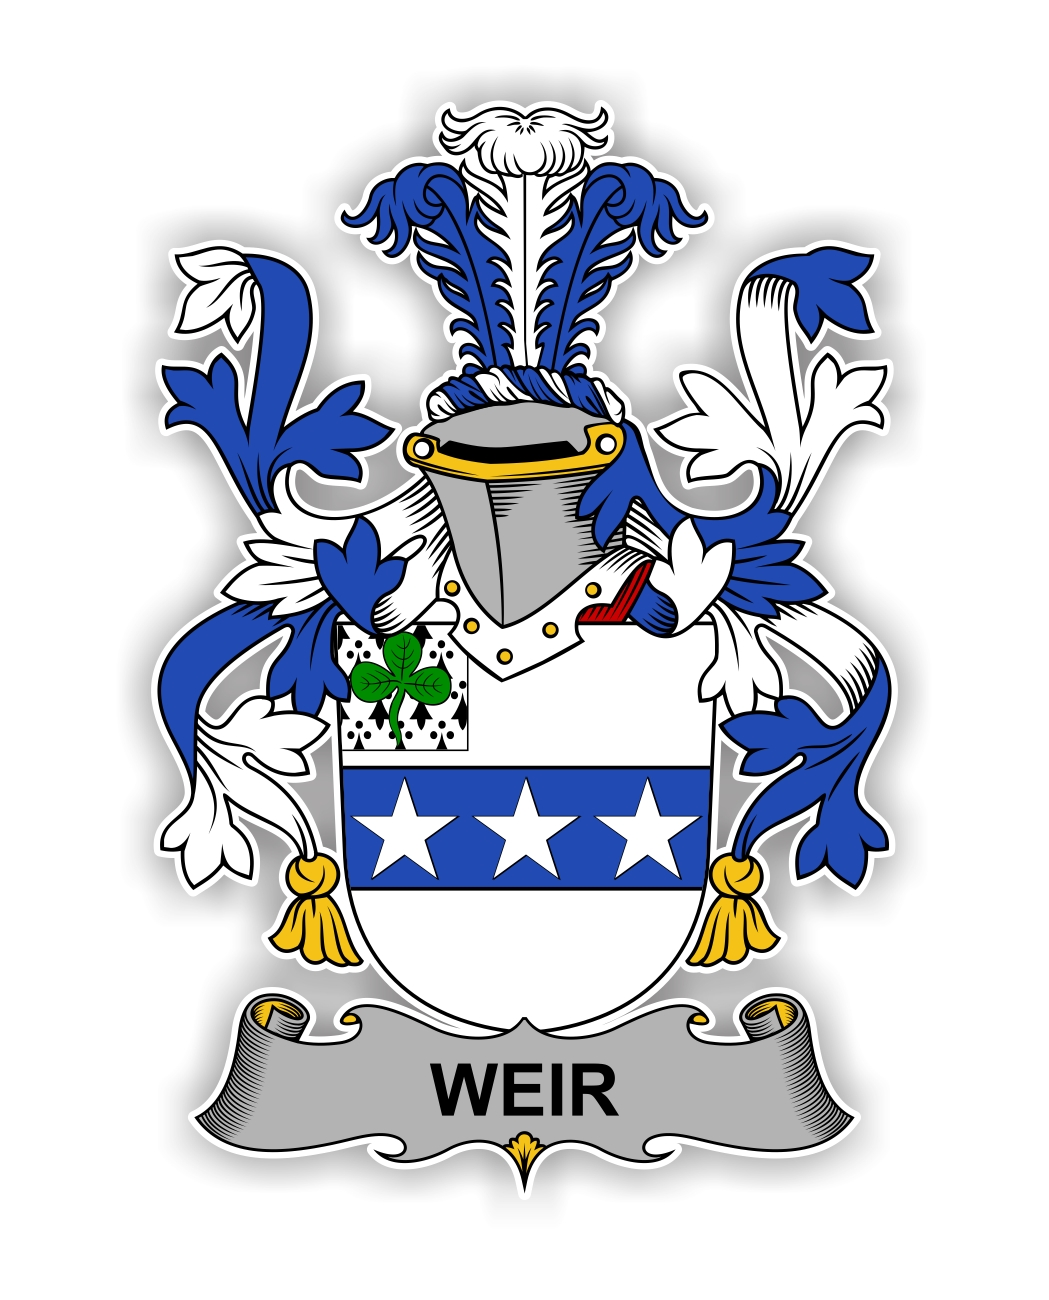 Weir Family Crest Vinyl Die Cut Decal Sticker 4 Sizes